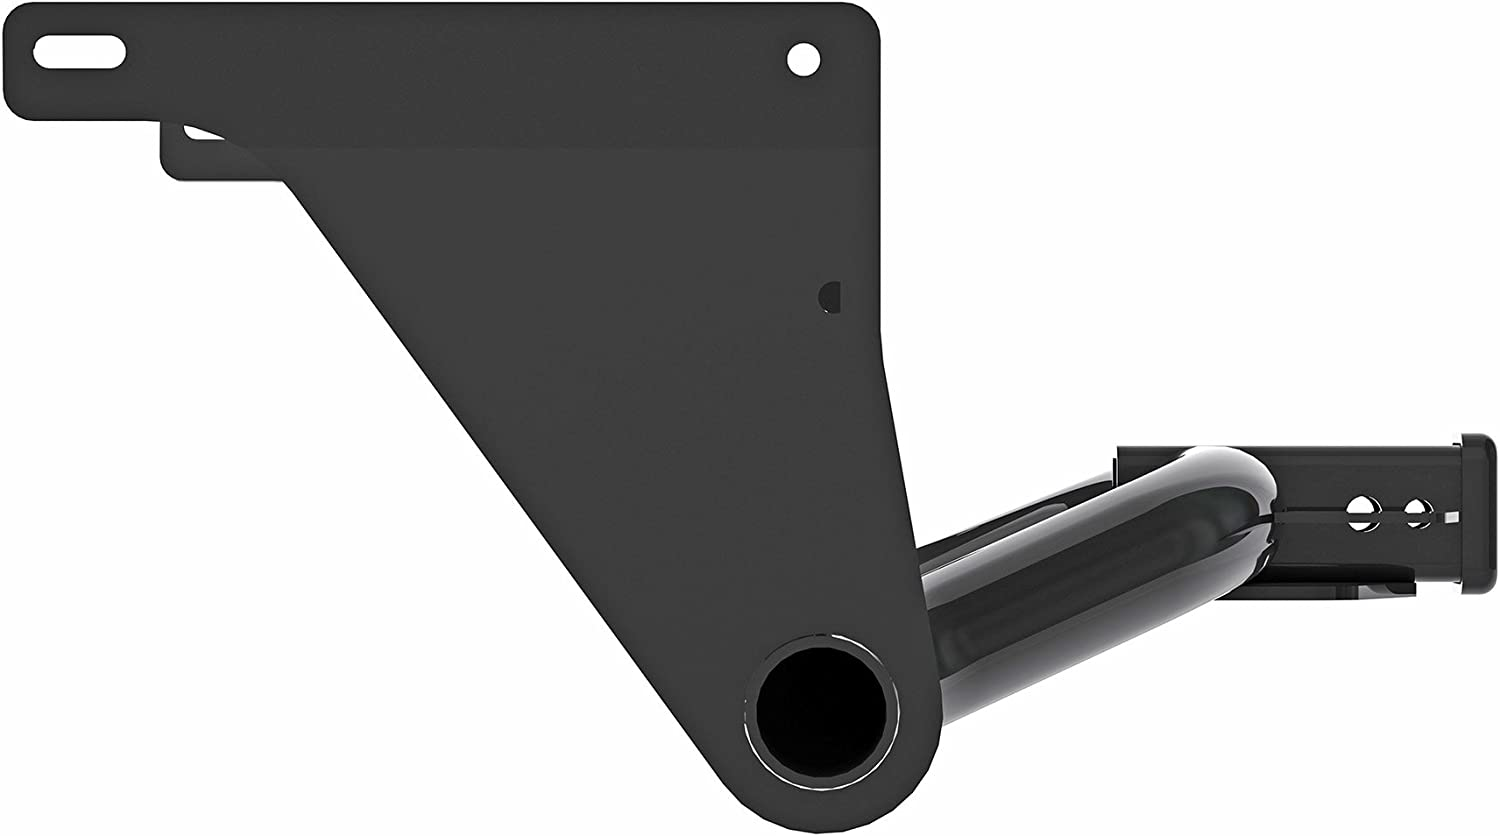 Includes Hitch Plug Cover Reese Towpower 44681 Class III Custom-Fit Hitch with 2 Square Receiver Opening